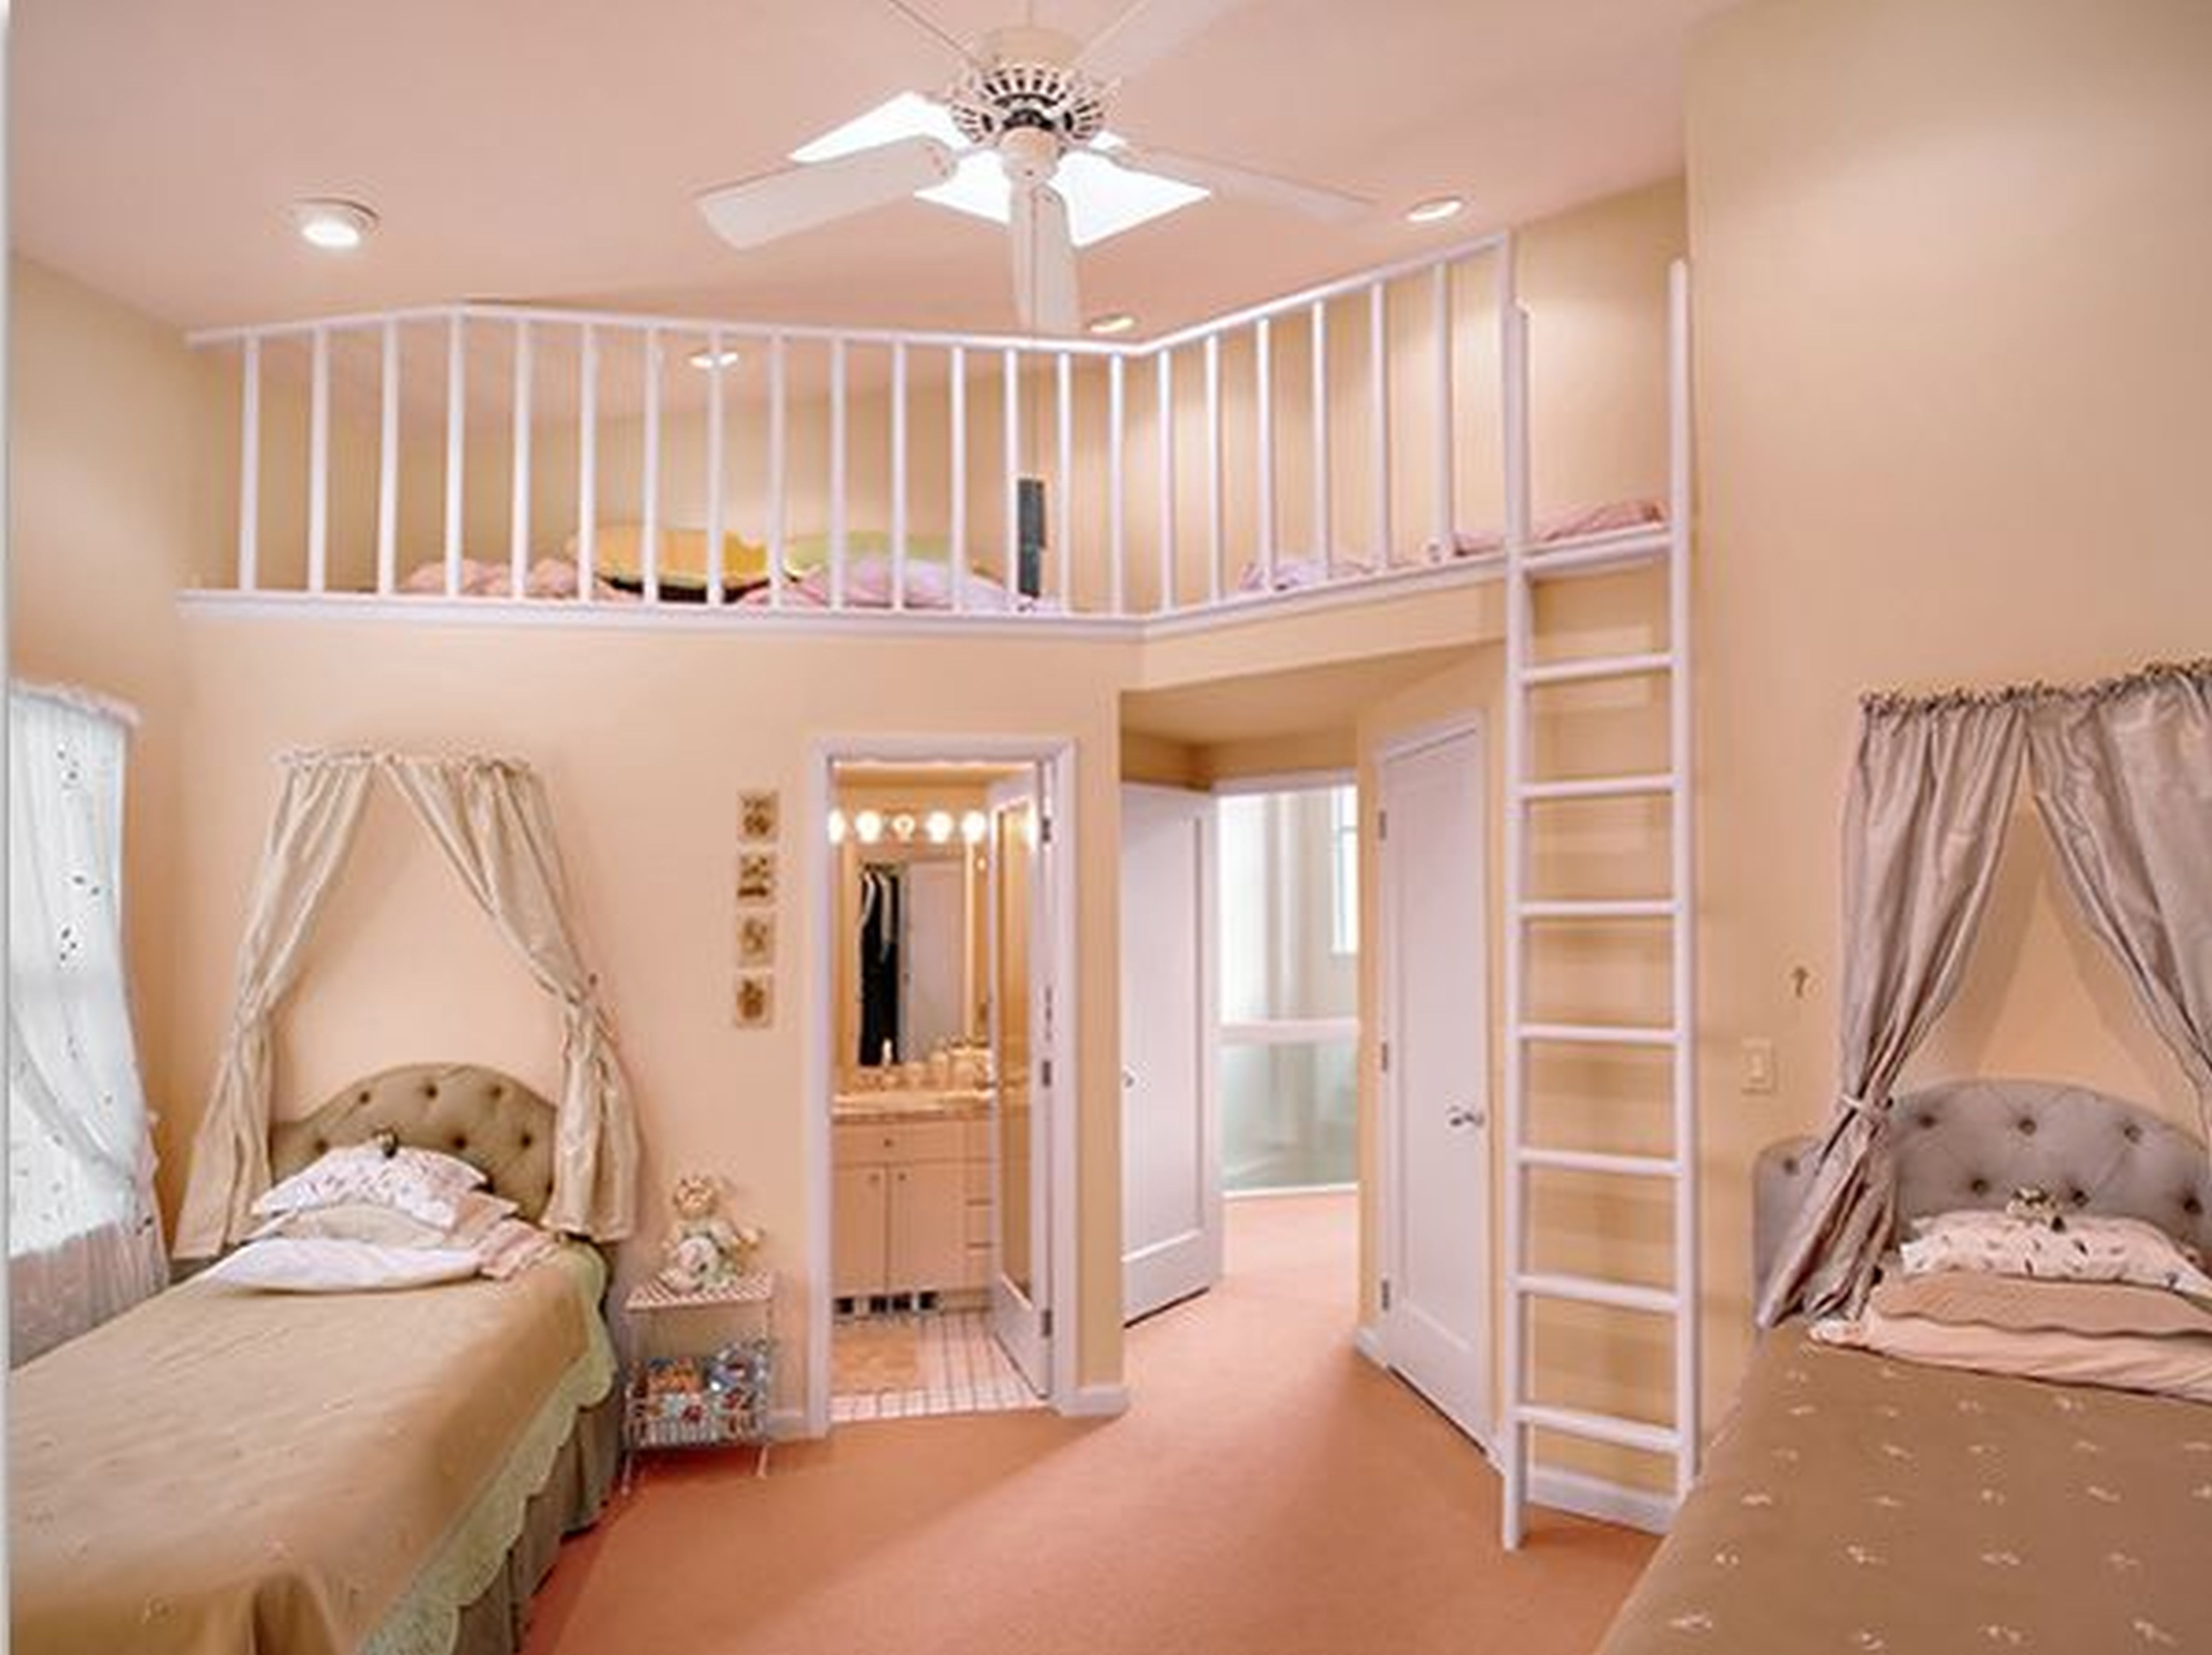 Bunk Bed For Sale By Owner